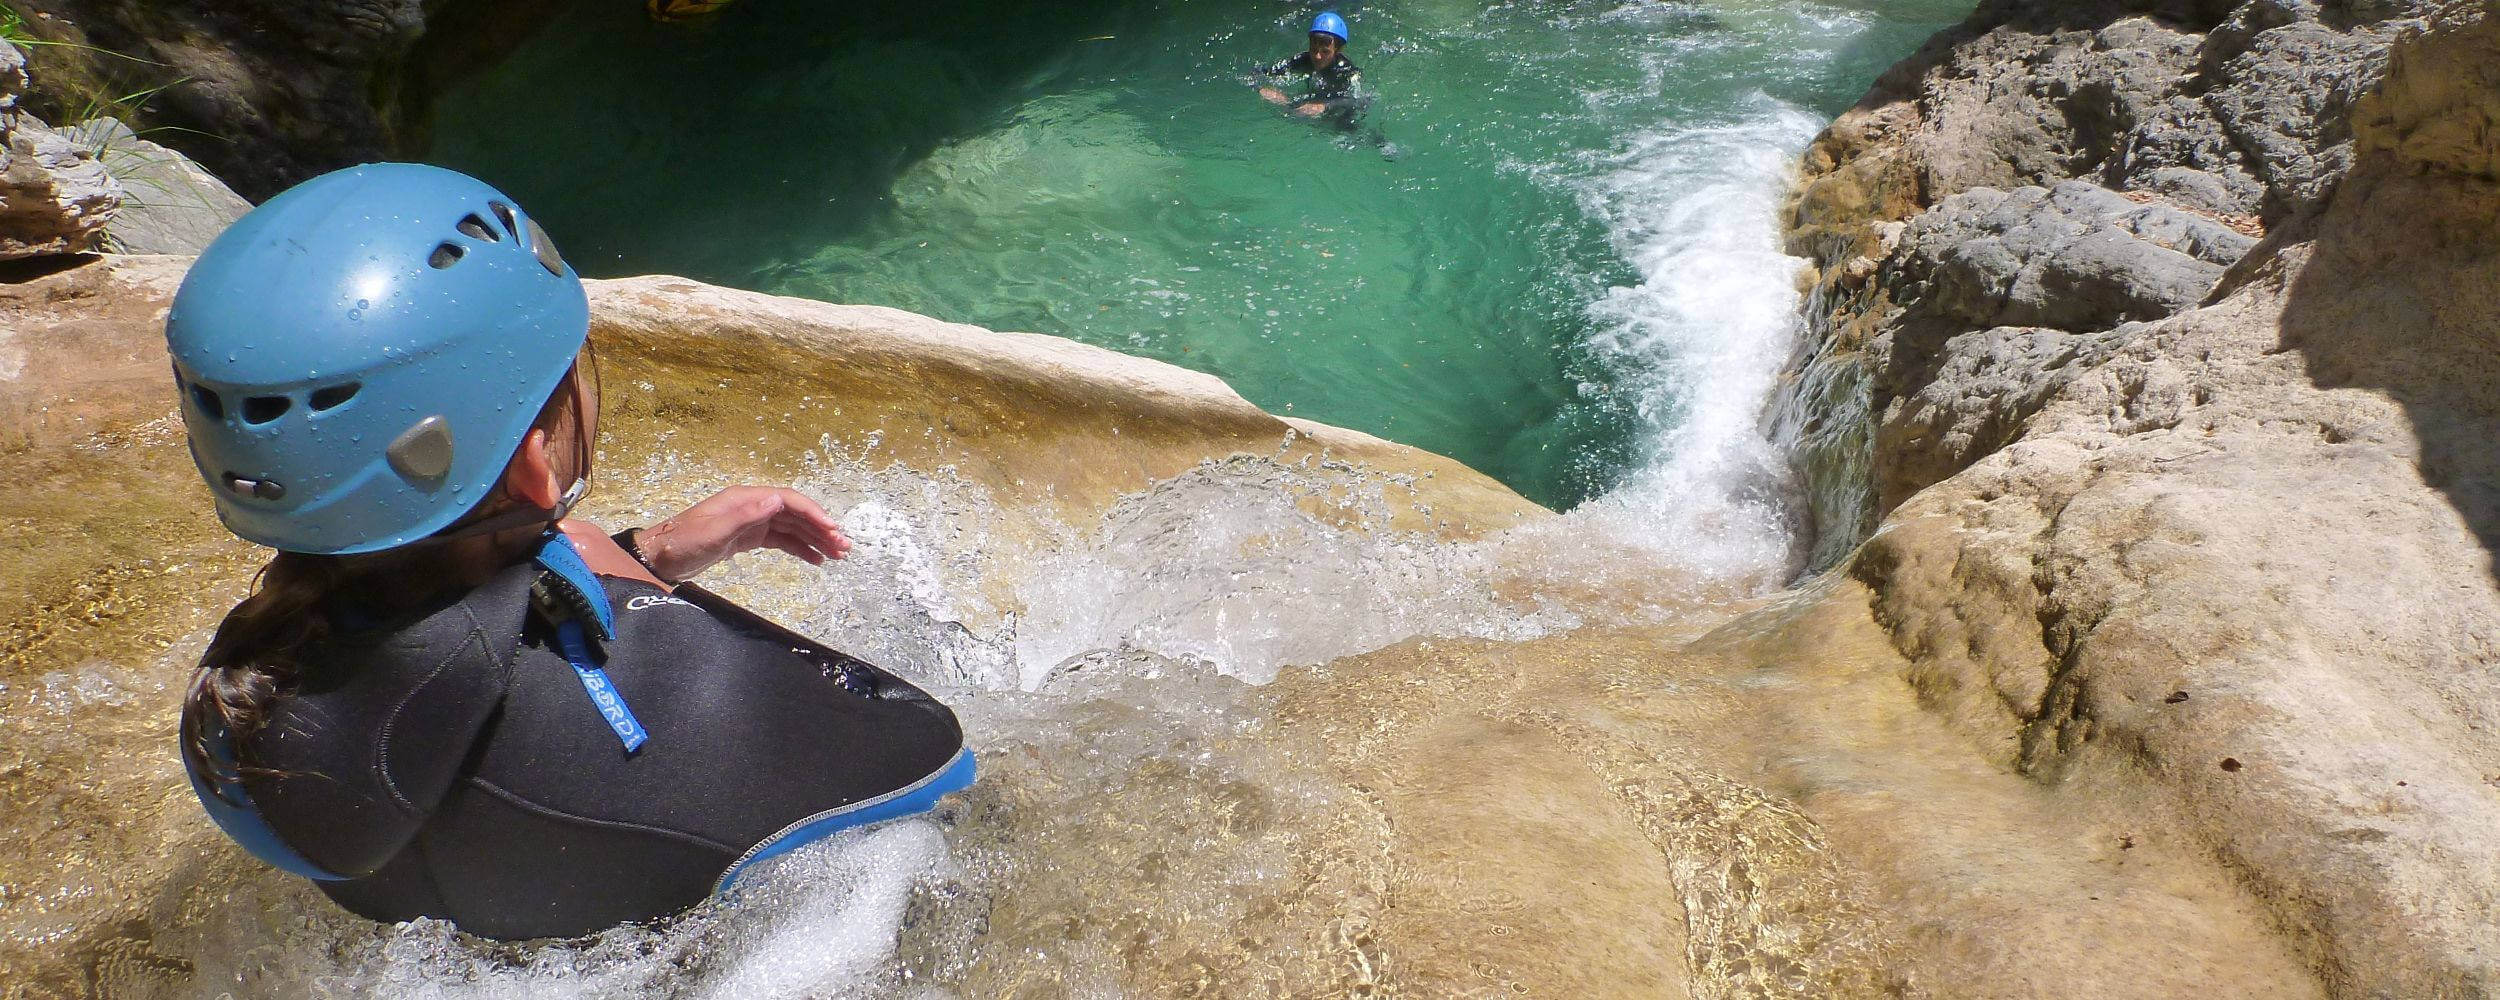 Slide in canyoning Barbaira - Italy